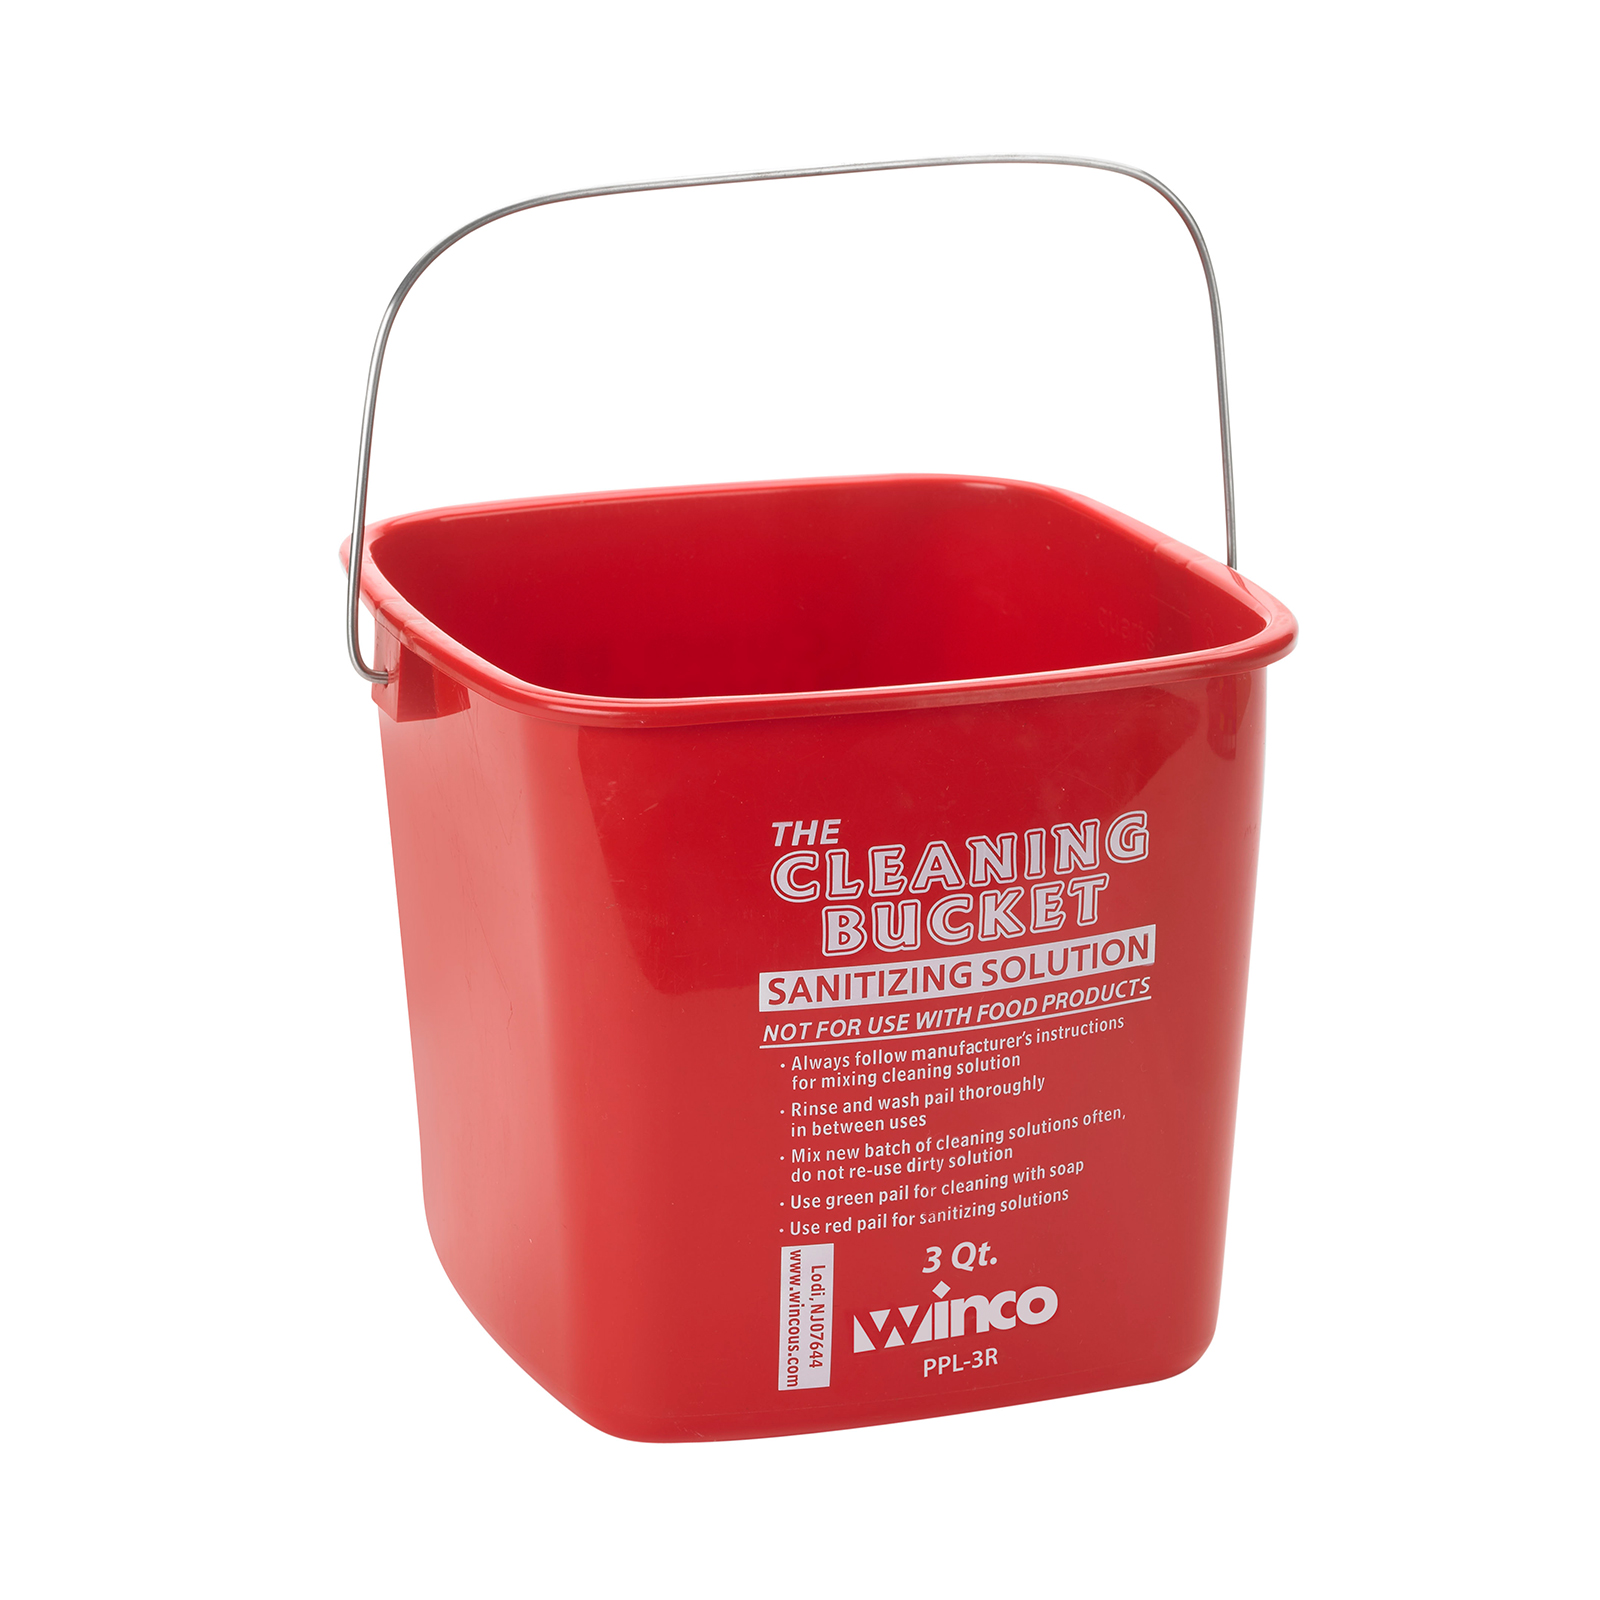 Winco PPL-3R bucket